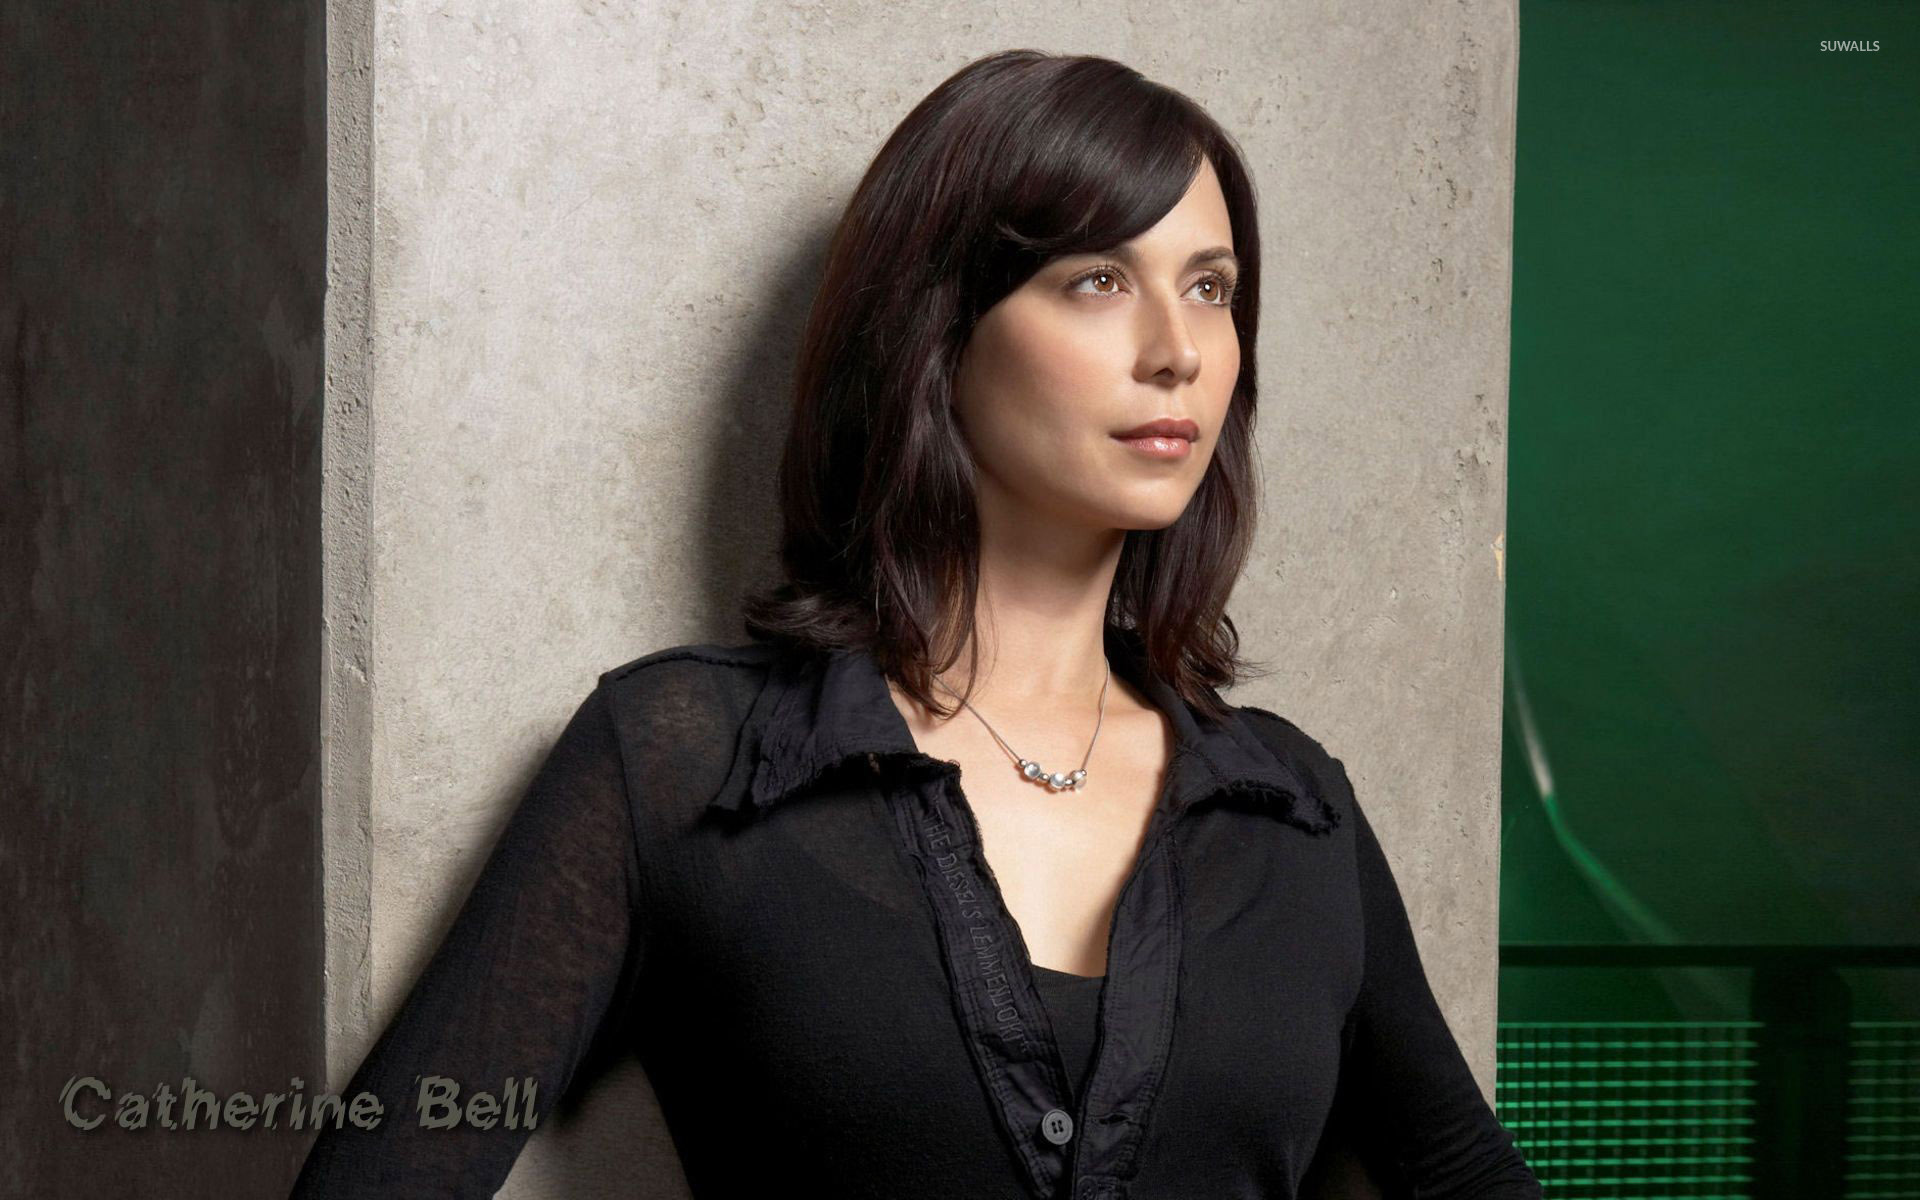 Catherine Bell Wallpaper Desktop Backgrounds Mobile Home